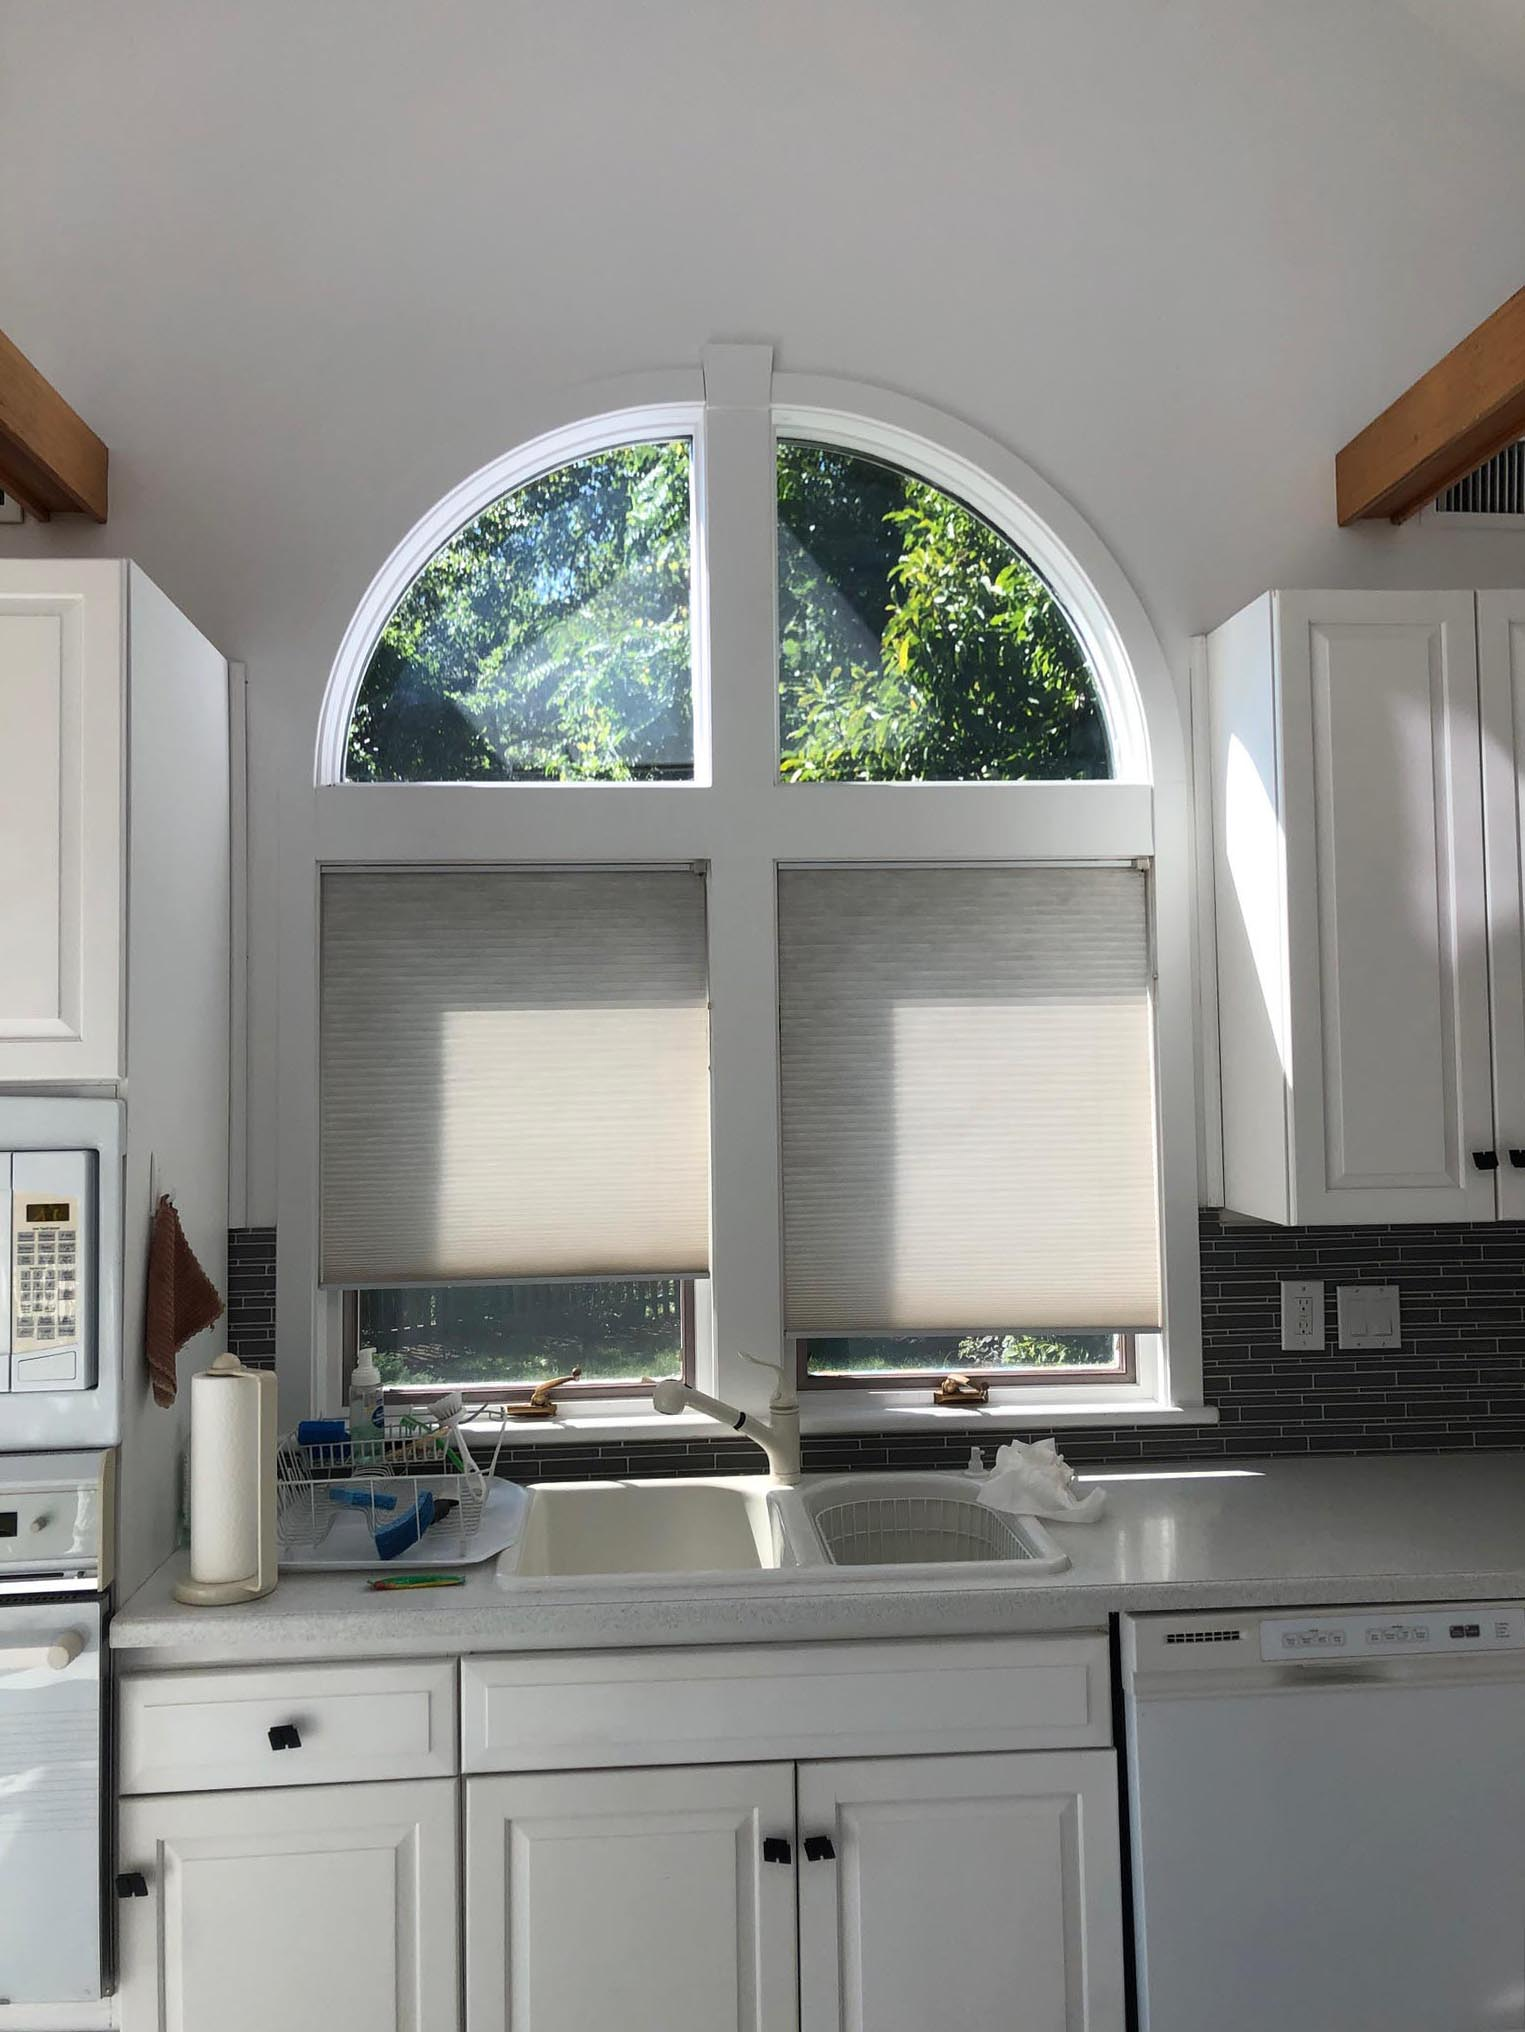 This original 1980s kitchen was outdated with old appliances and an uniquely shaped island. It was remodeled and transformed into a contemporary kitchen.